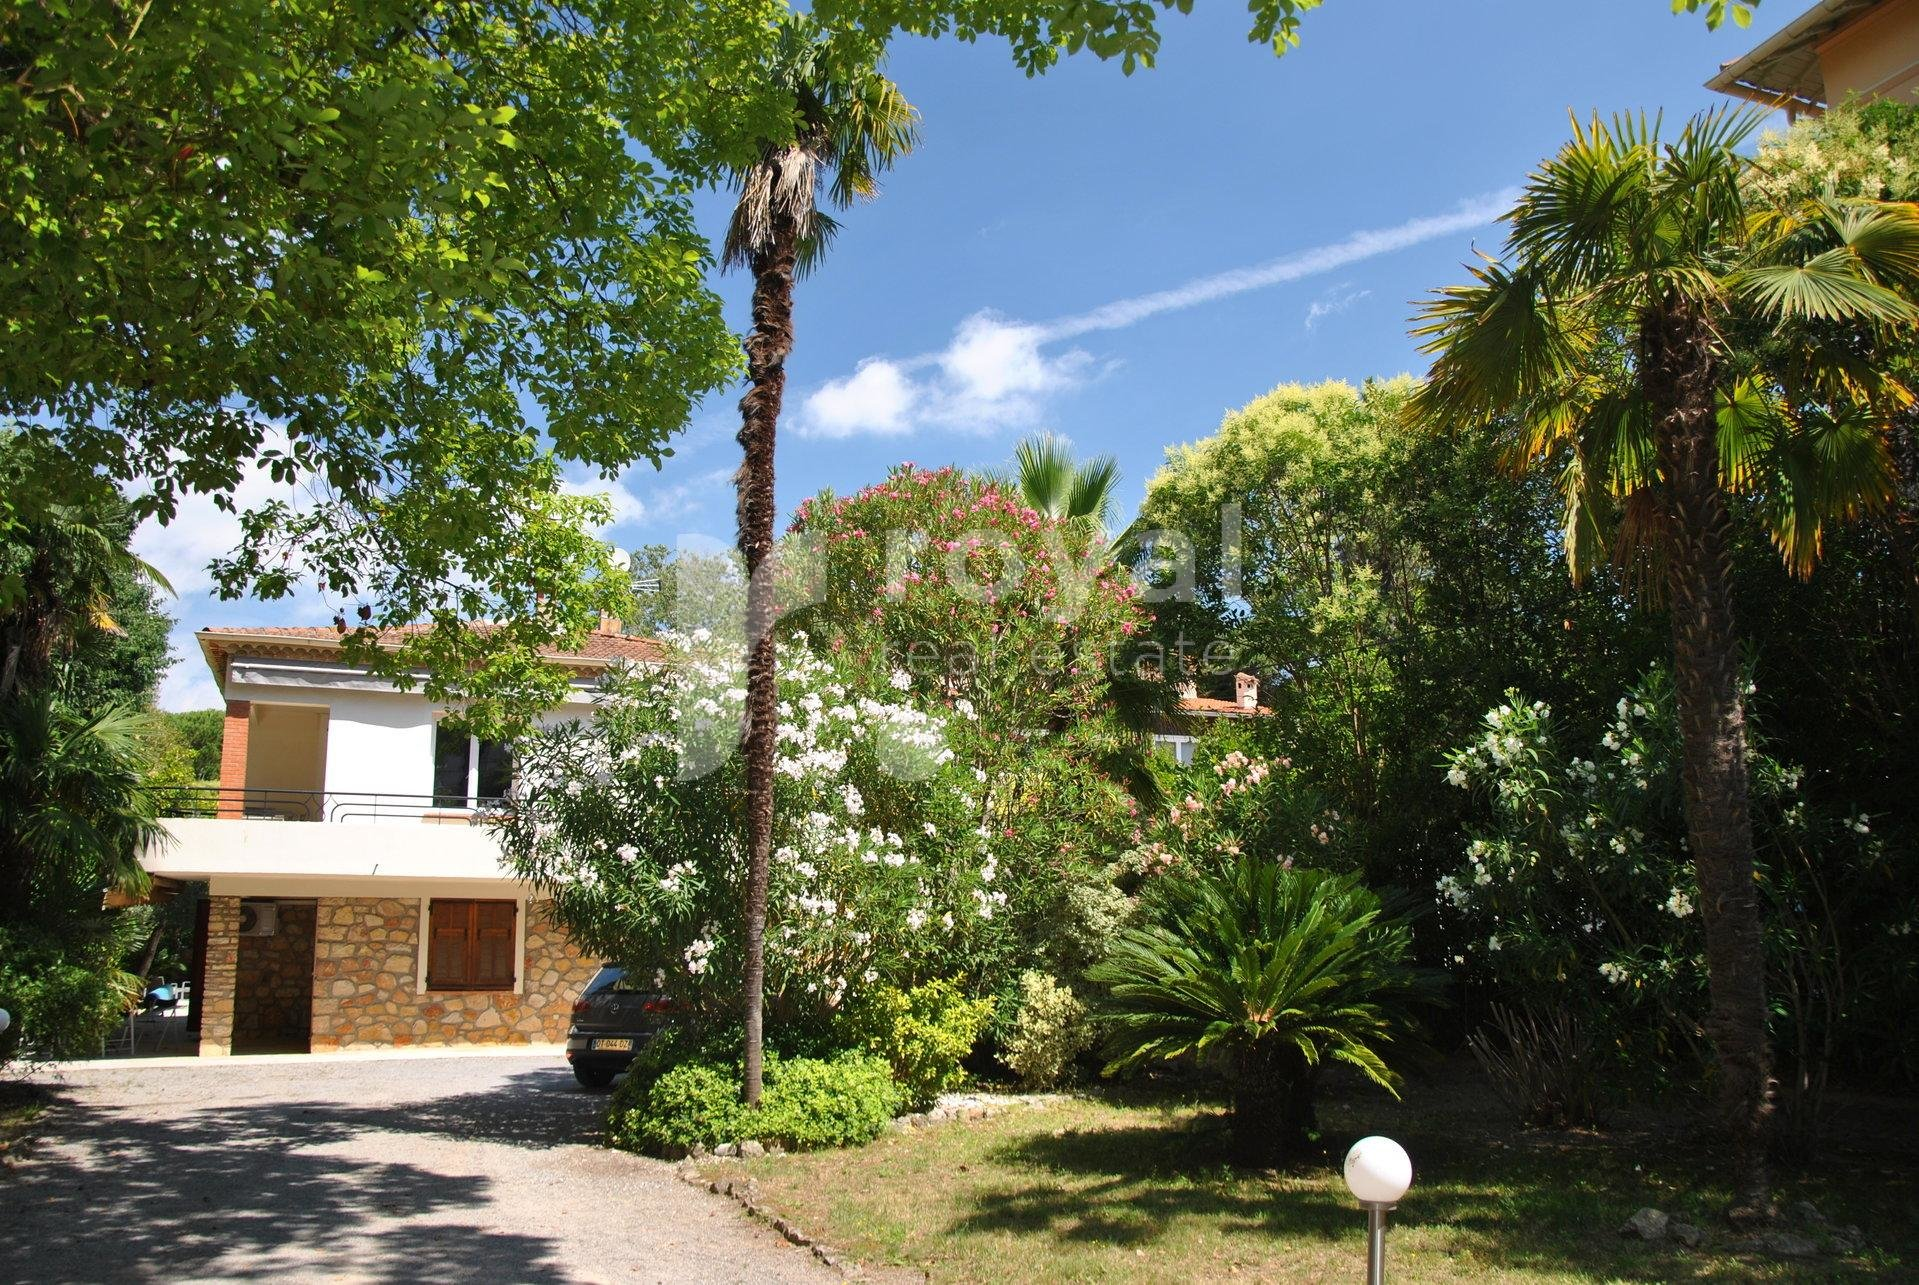 CANNES : RESIDENTIAL AREA